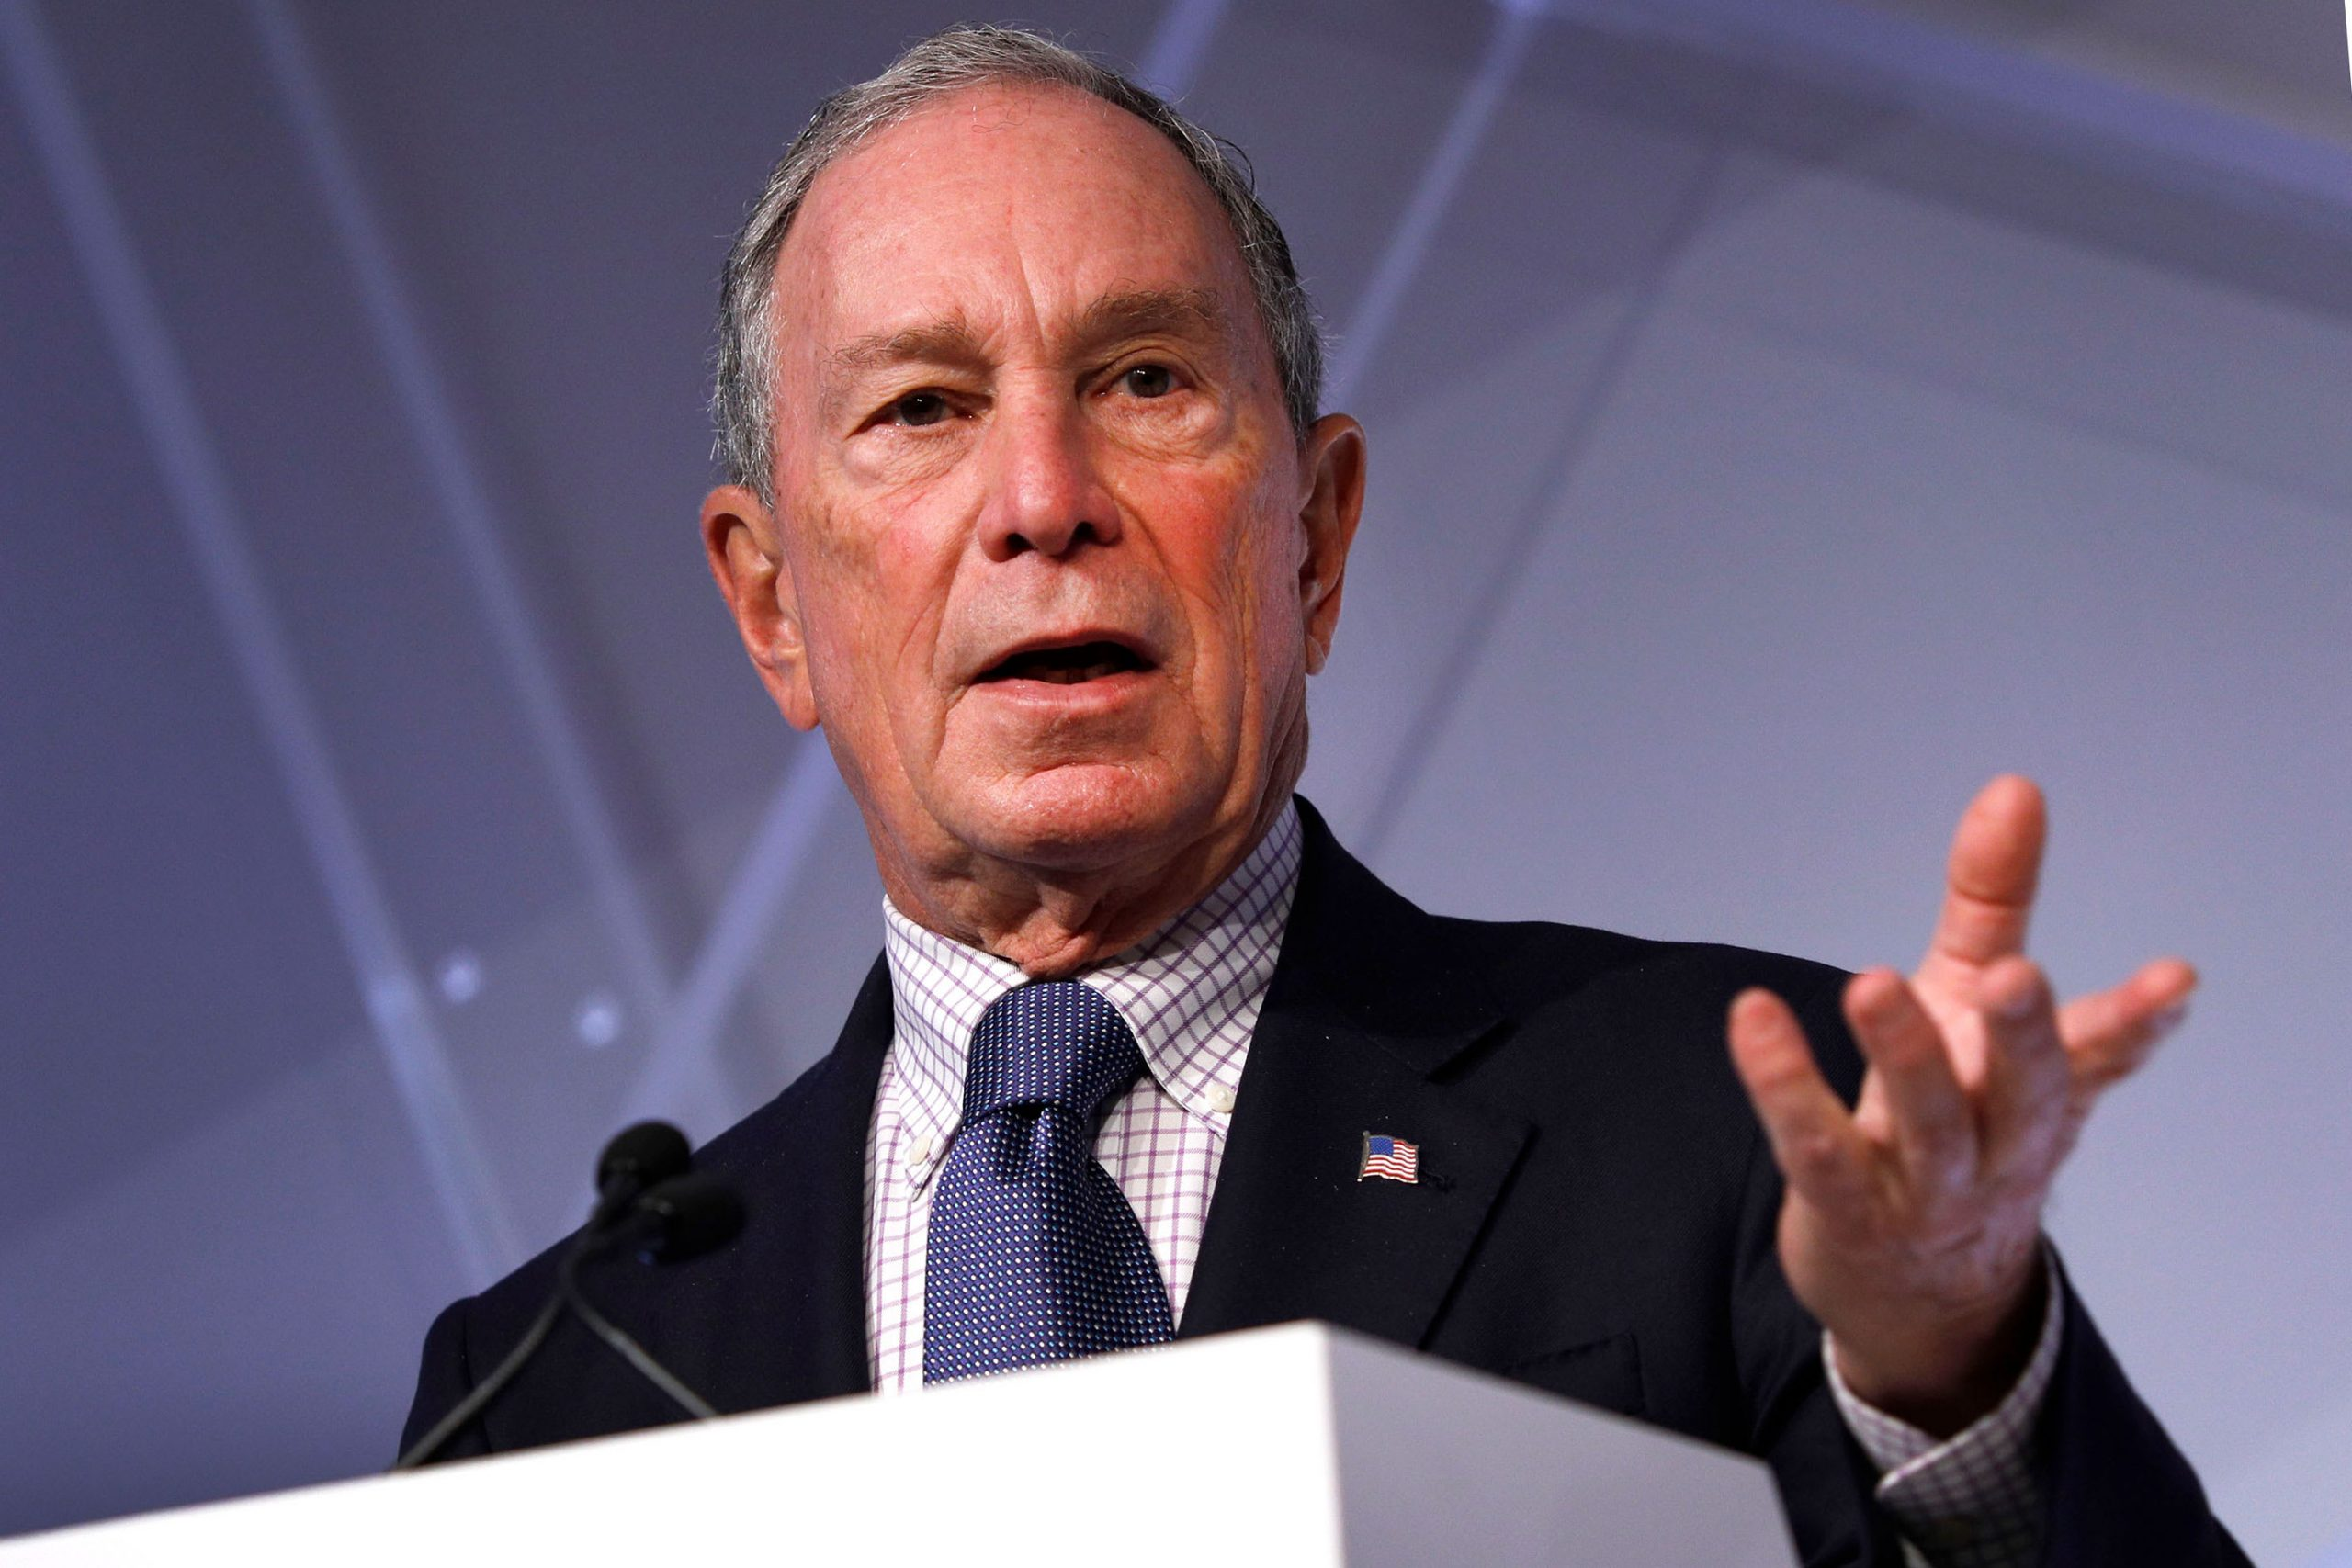 Bloomberg campaign says Tennessee vandalism